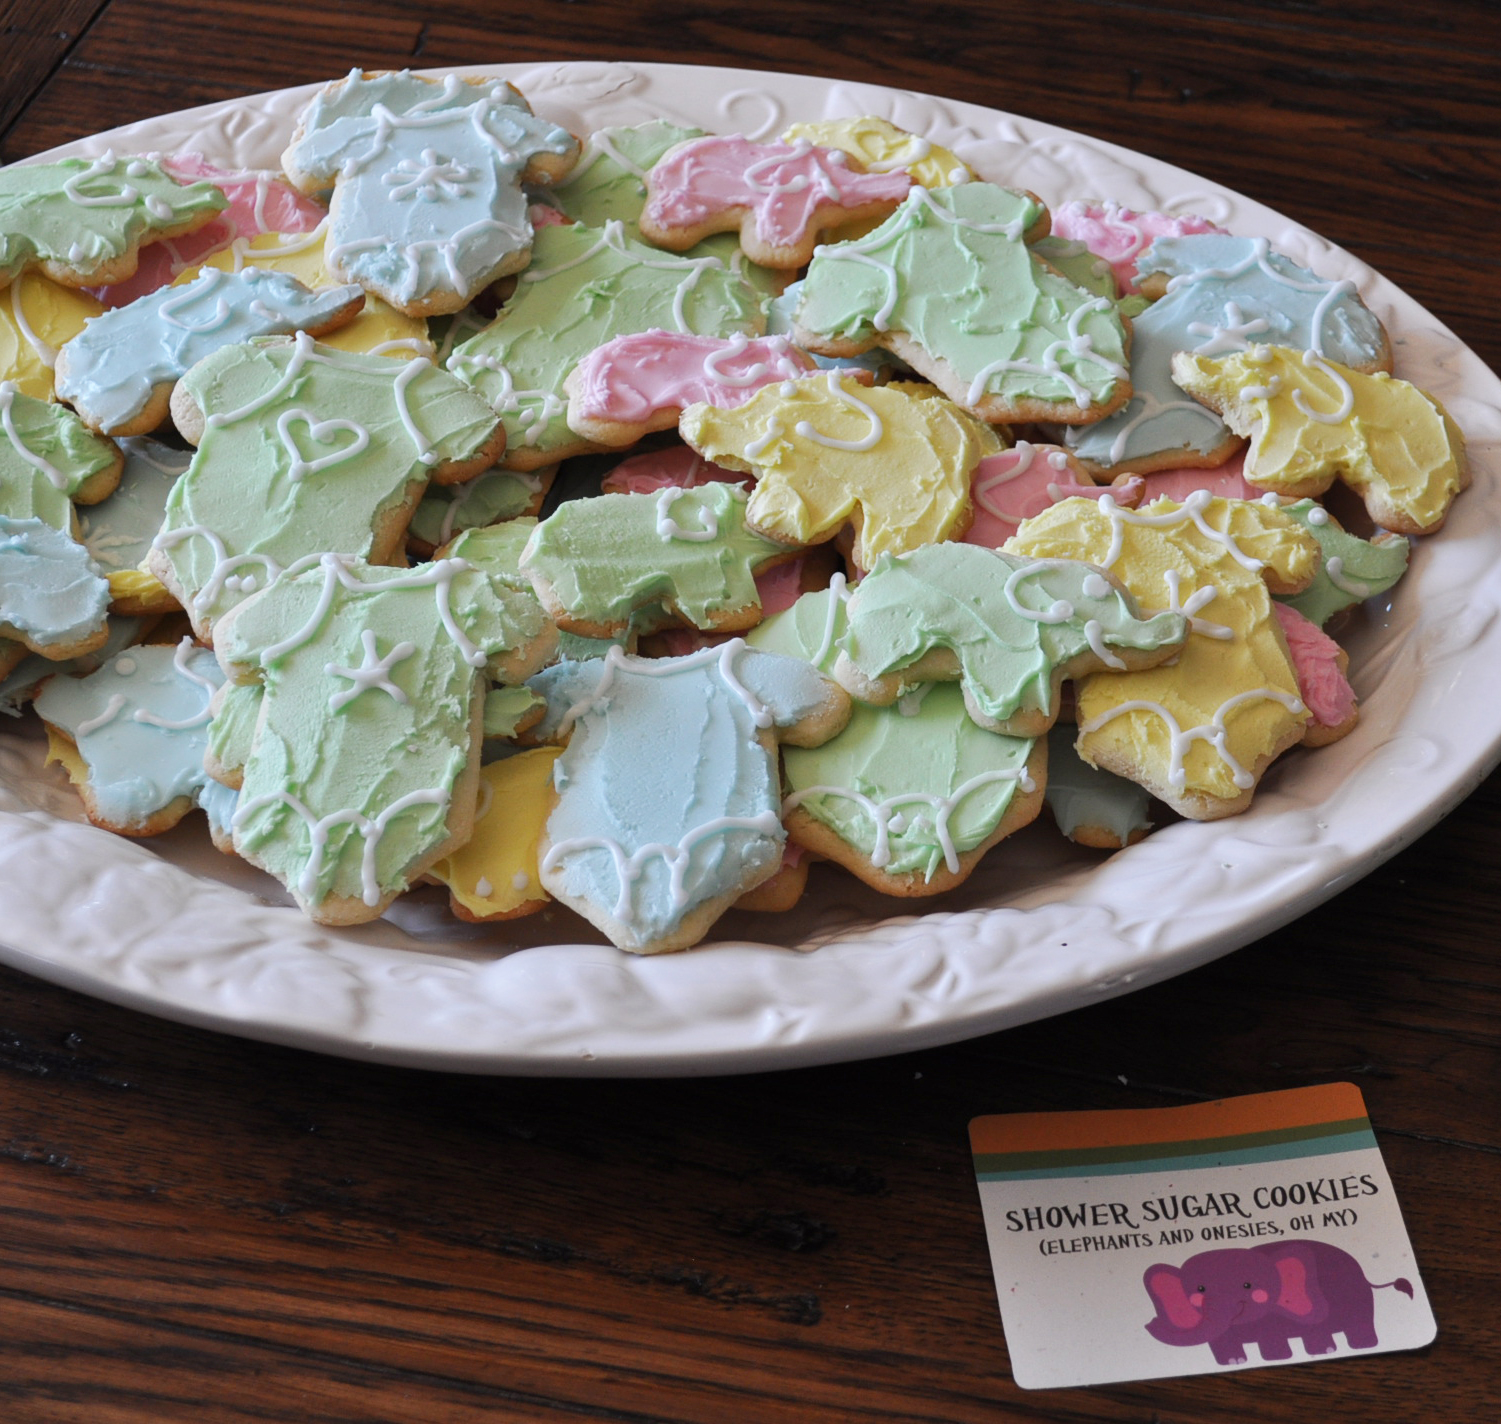 Shower Sugar Cookies- Onesies and Elephants